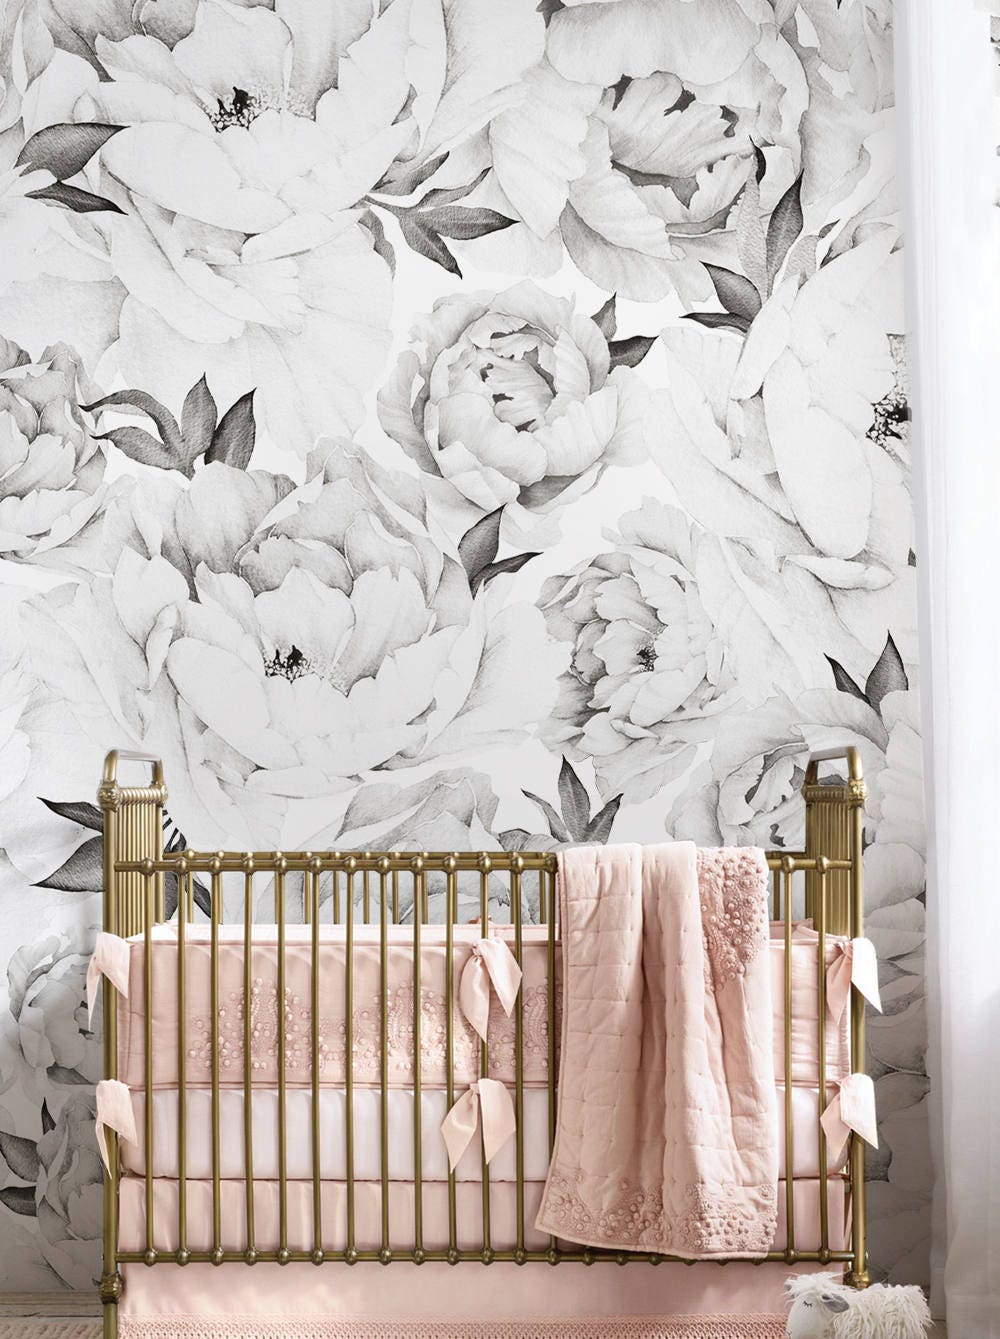 Peony Flower Mural Wallpaper Black And White Watercolor Etsy